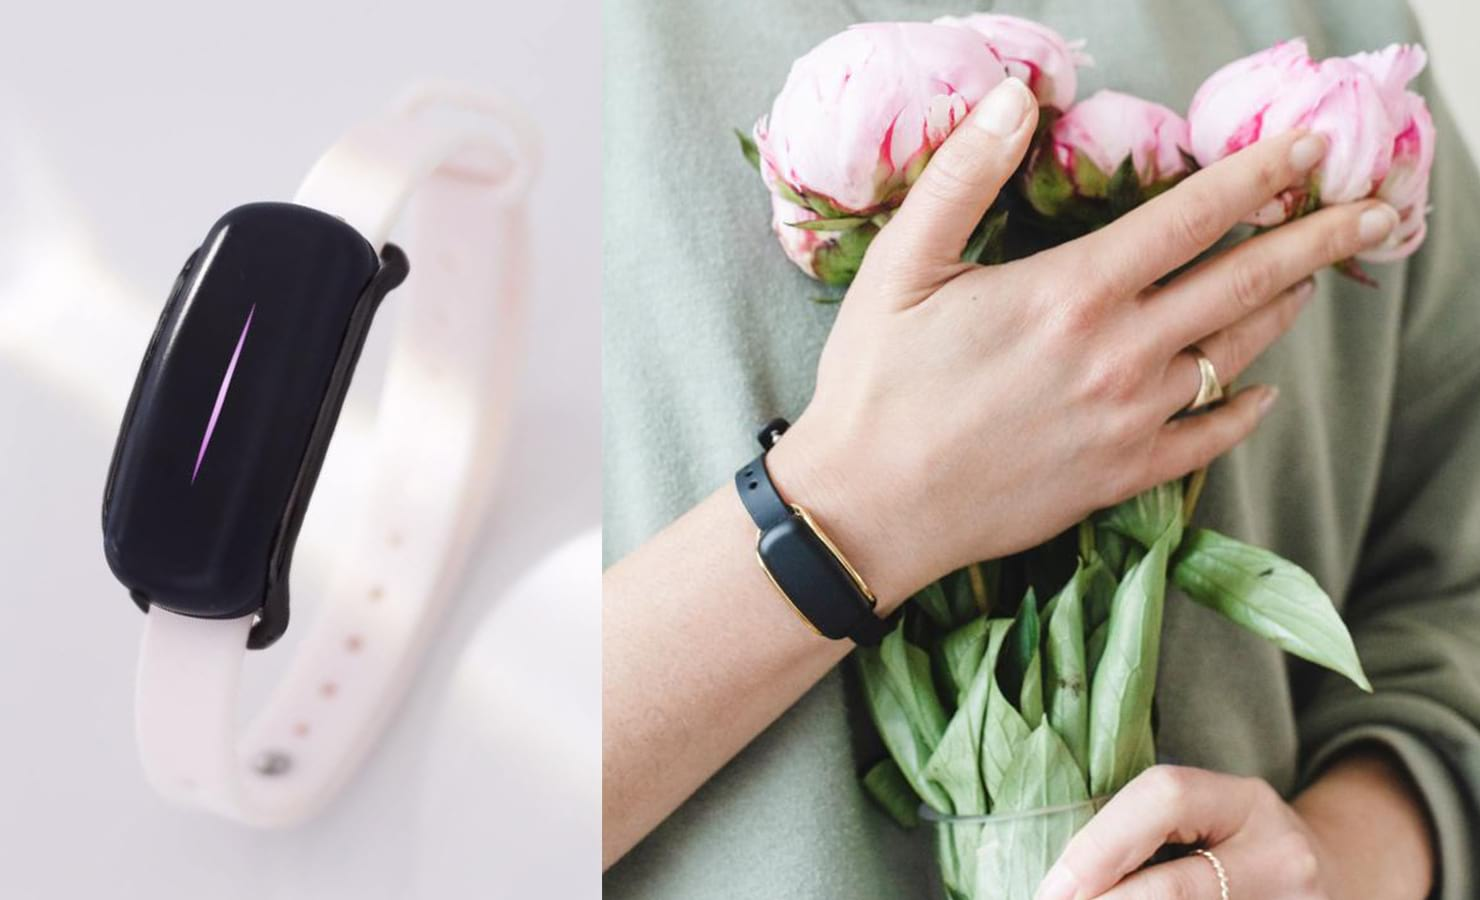 bloomthis-qixi-festival-gift-guide-2021-13-uncommon-goods-long-distance-touch-bracelet-set